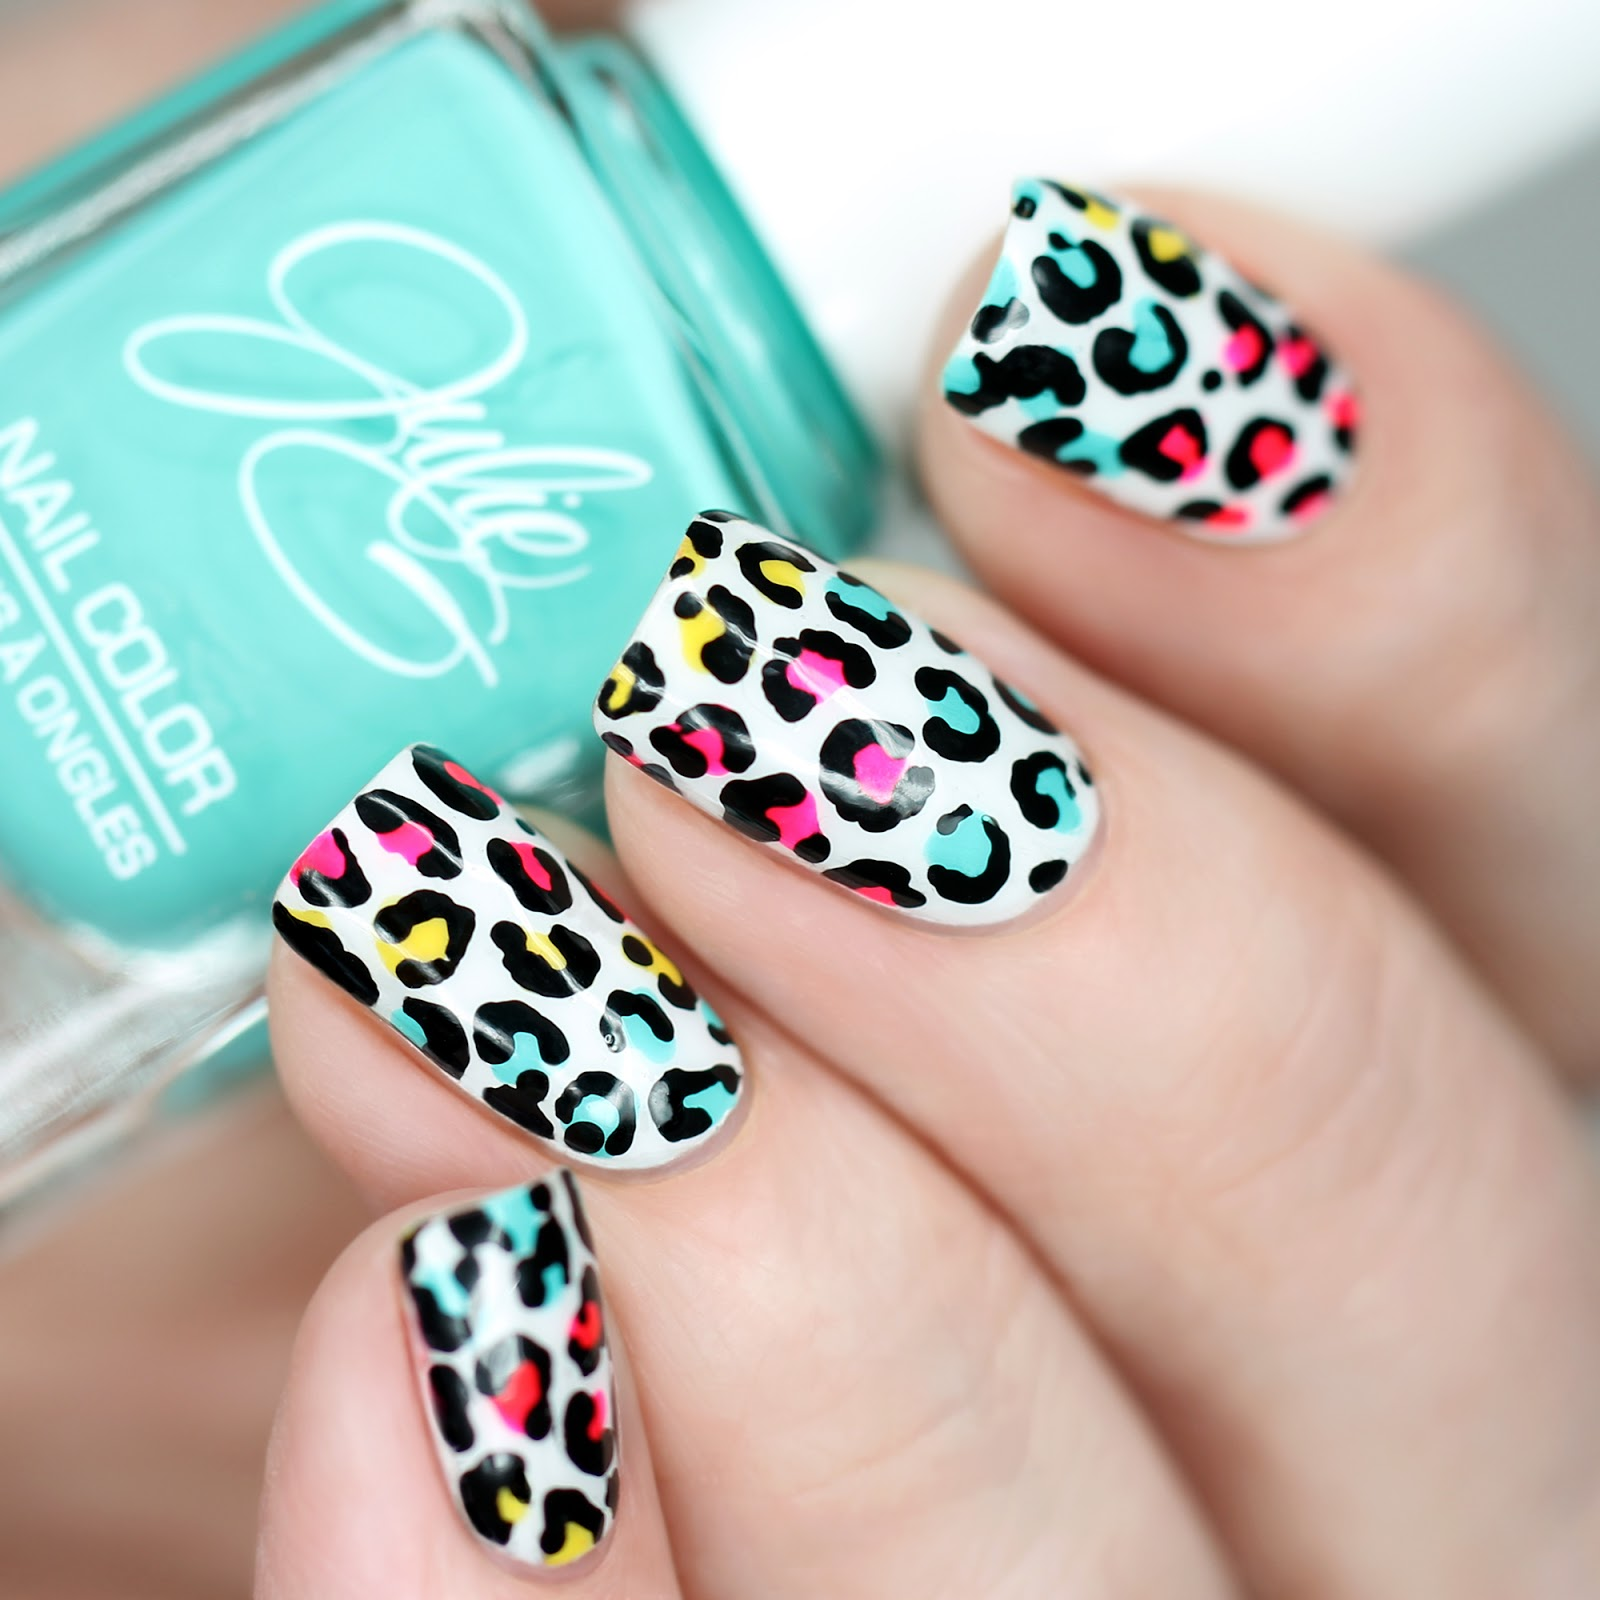 Bright Summer Nail Art + Meet Me in Orange County July 9th! - work ...